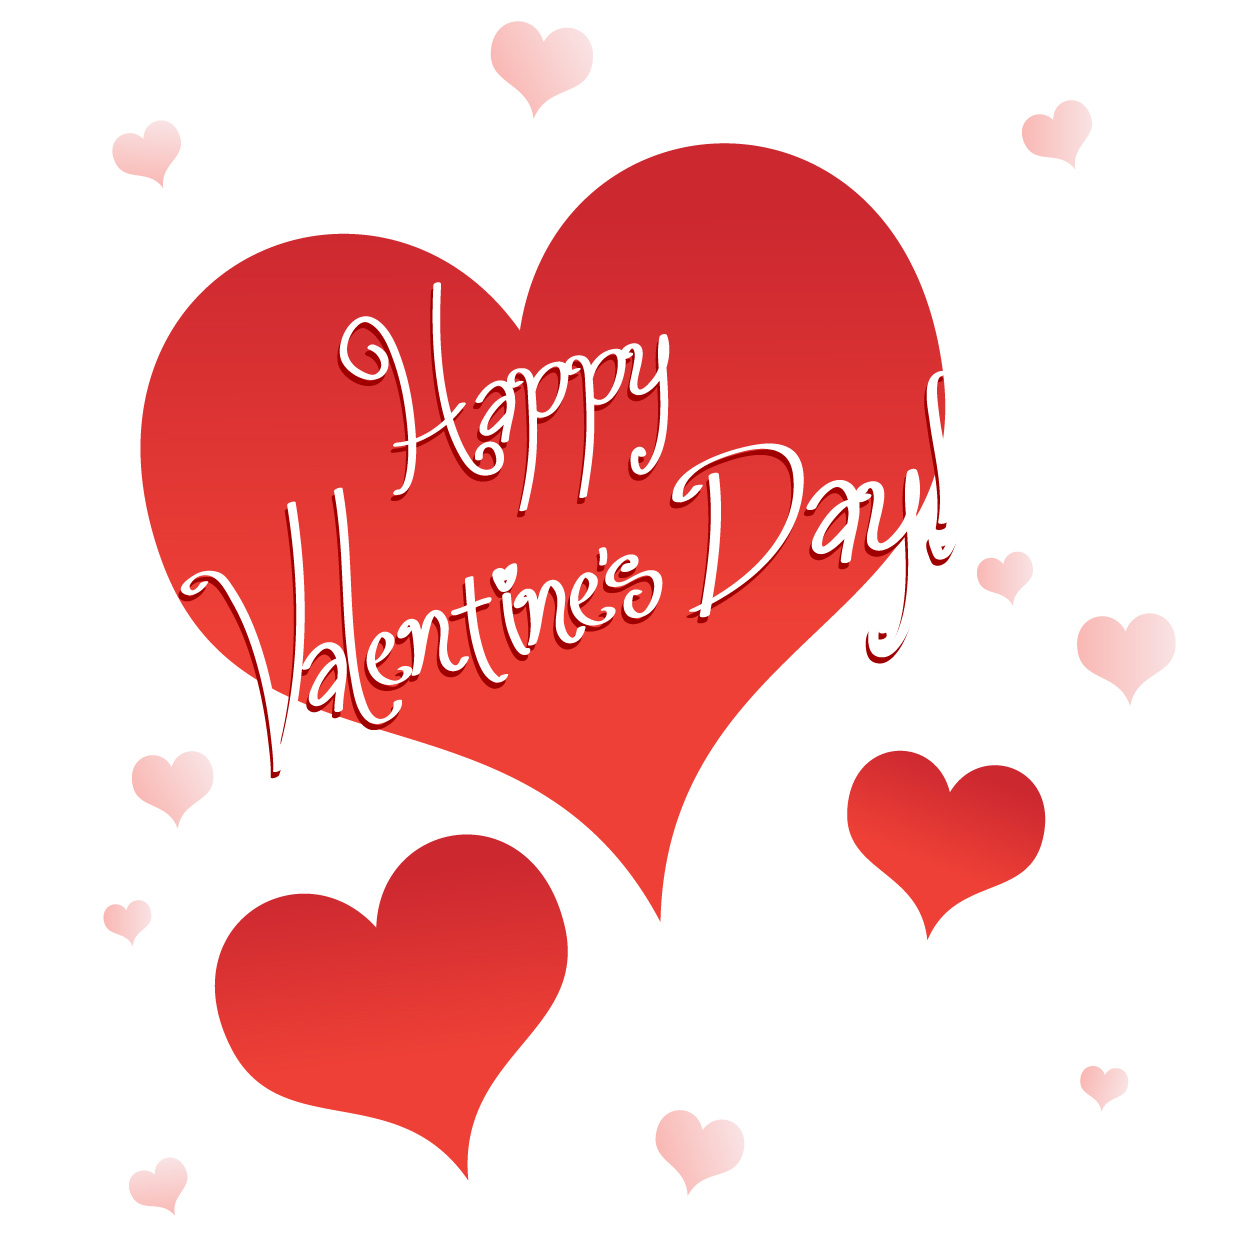 Valentine S Day Happy Valentine S Day Cl-Valentine S Day Happy Valentine S Day Clipart Hearts Red Pink-12